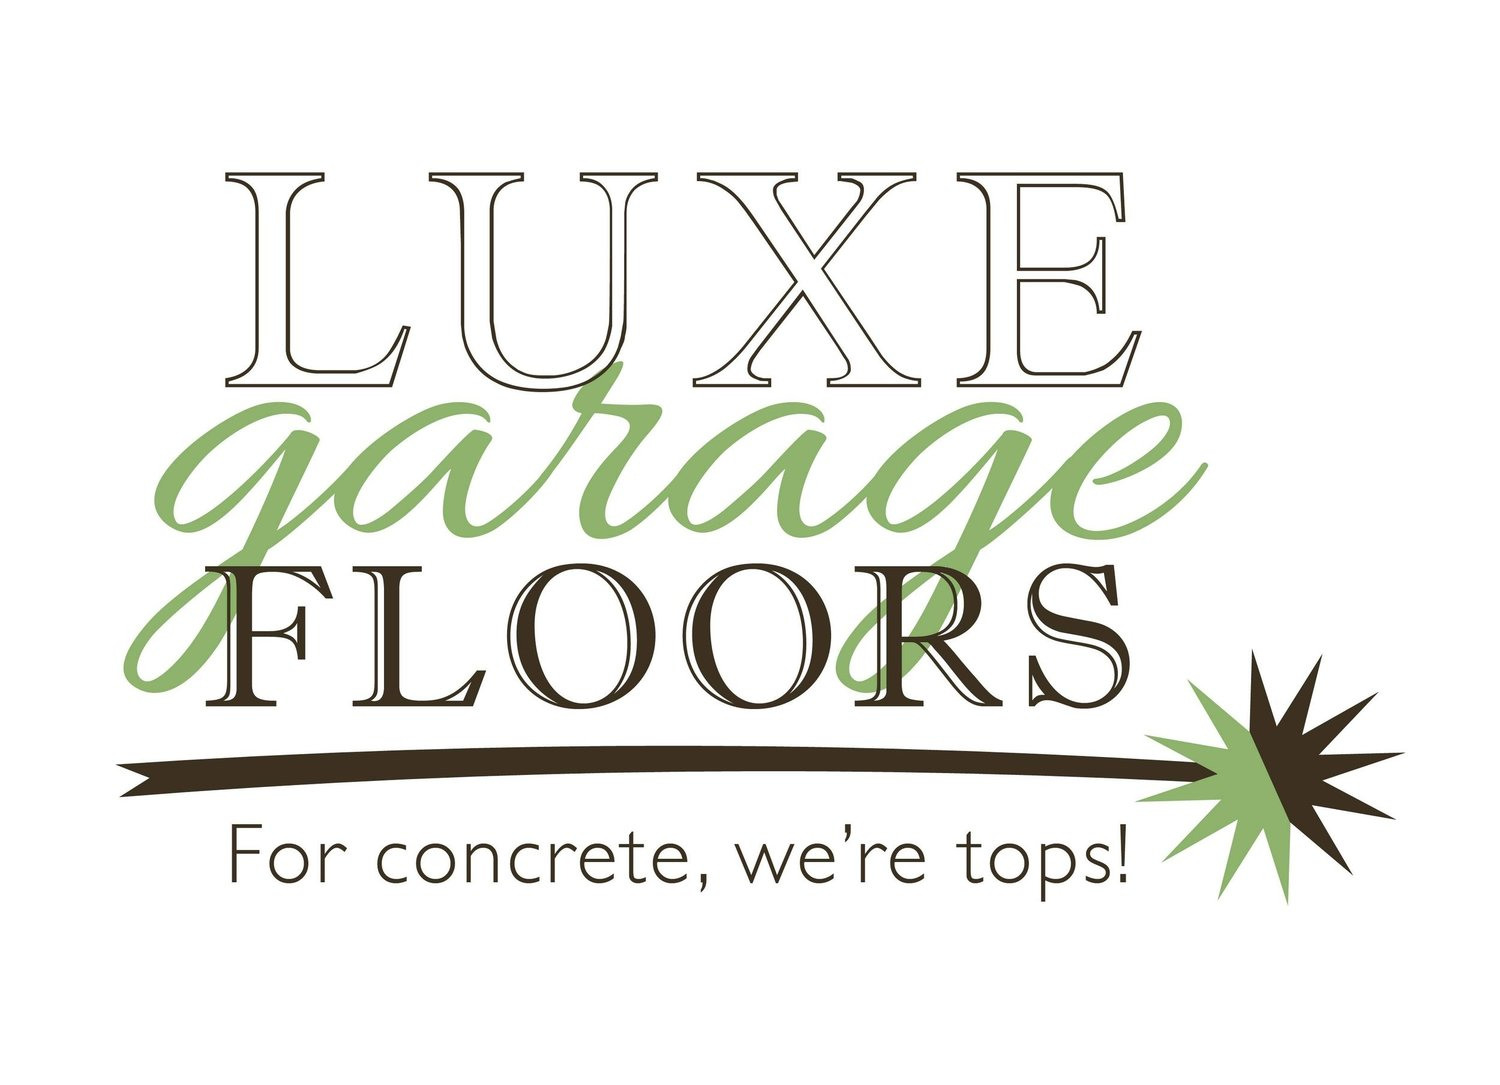 Luxe Garage Floors